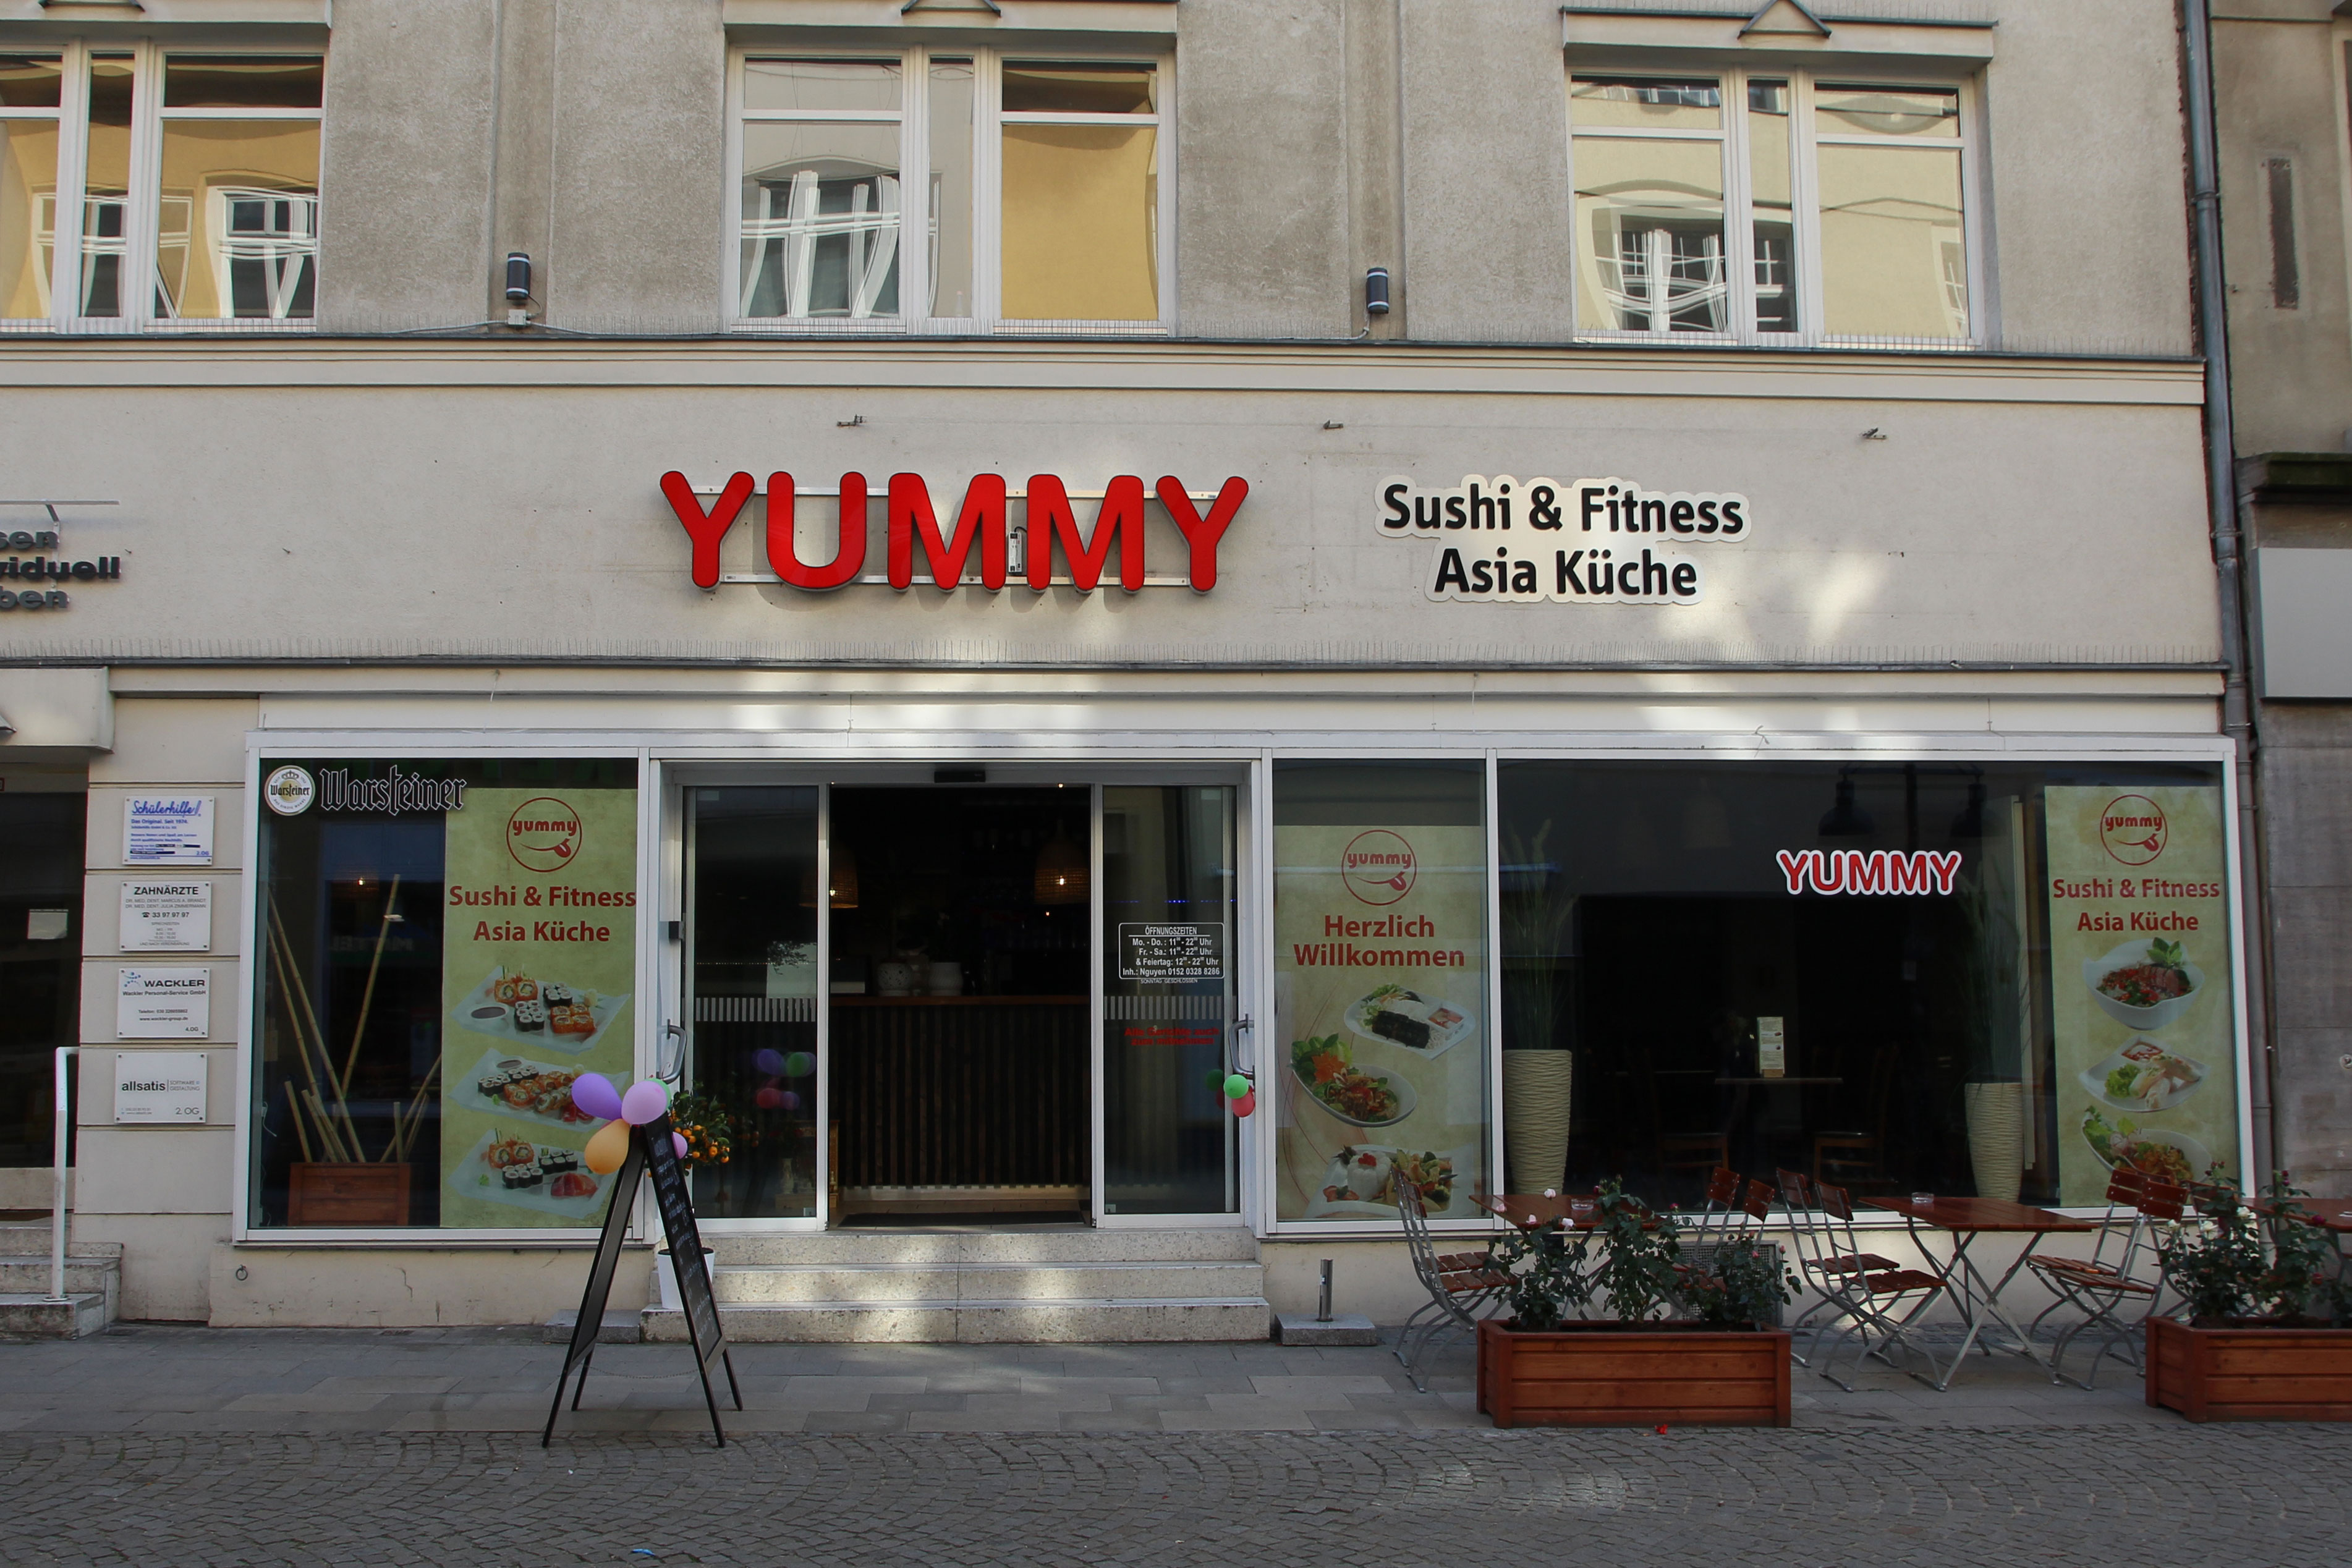 Yummy – Sushi & Fitness Asia Küche